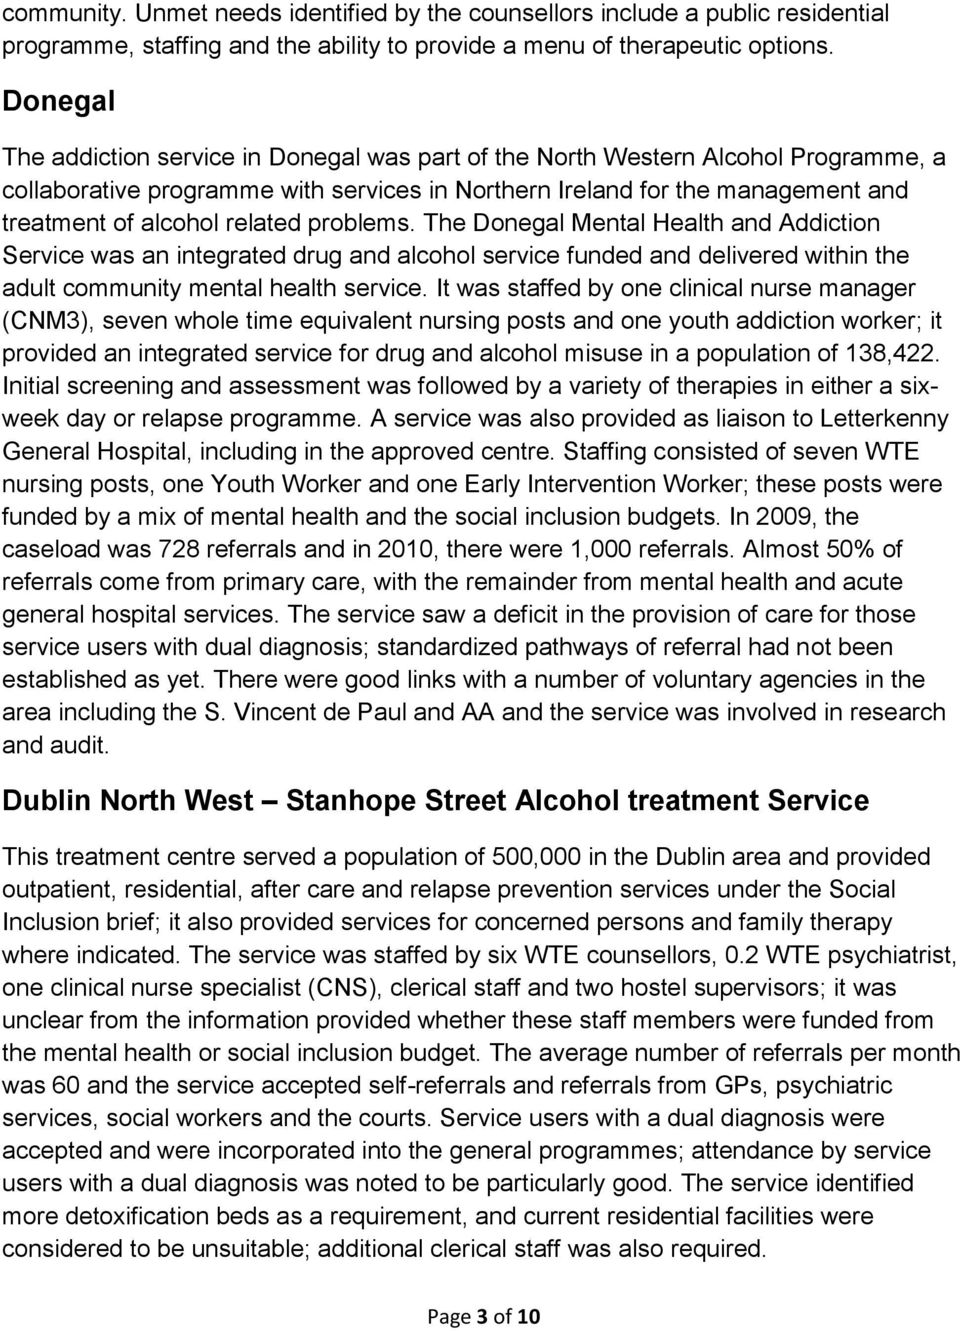 related problems. The Donegal Mental Health and Addiction Service was an integrated drug and alcohol service funded and delivered within the adult community mental health service.